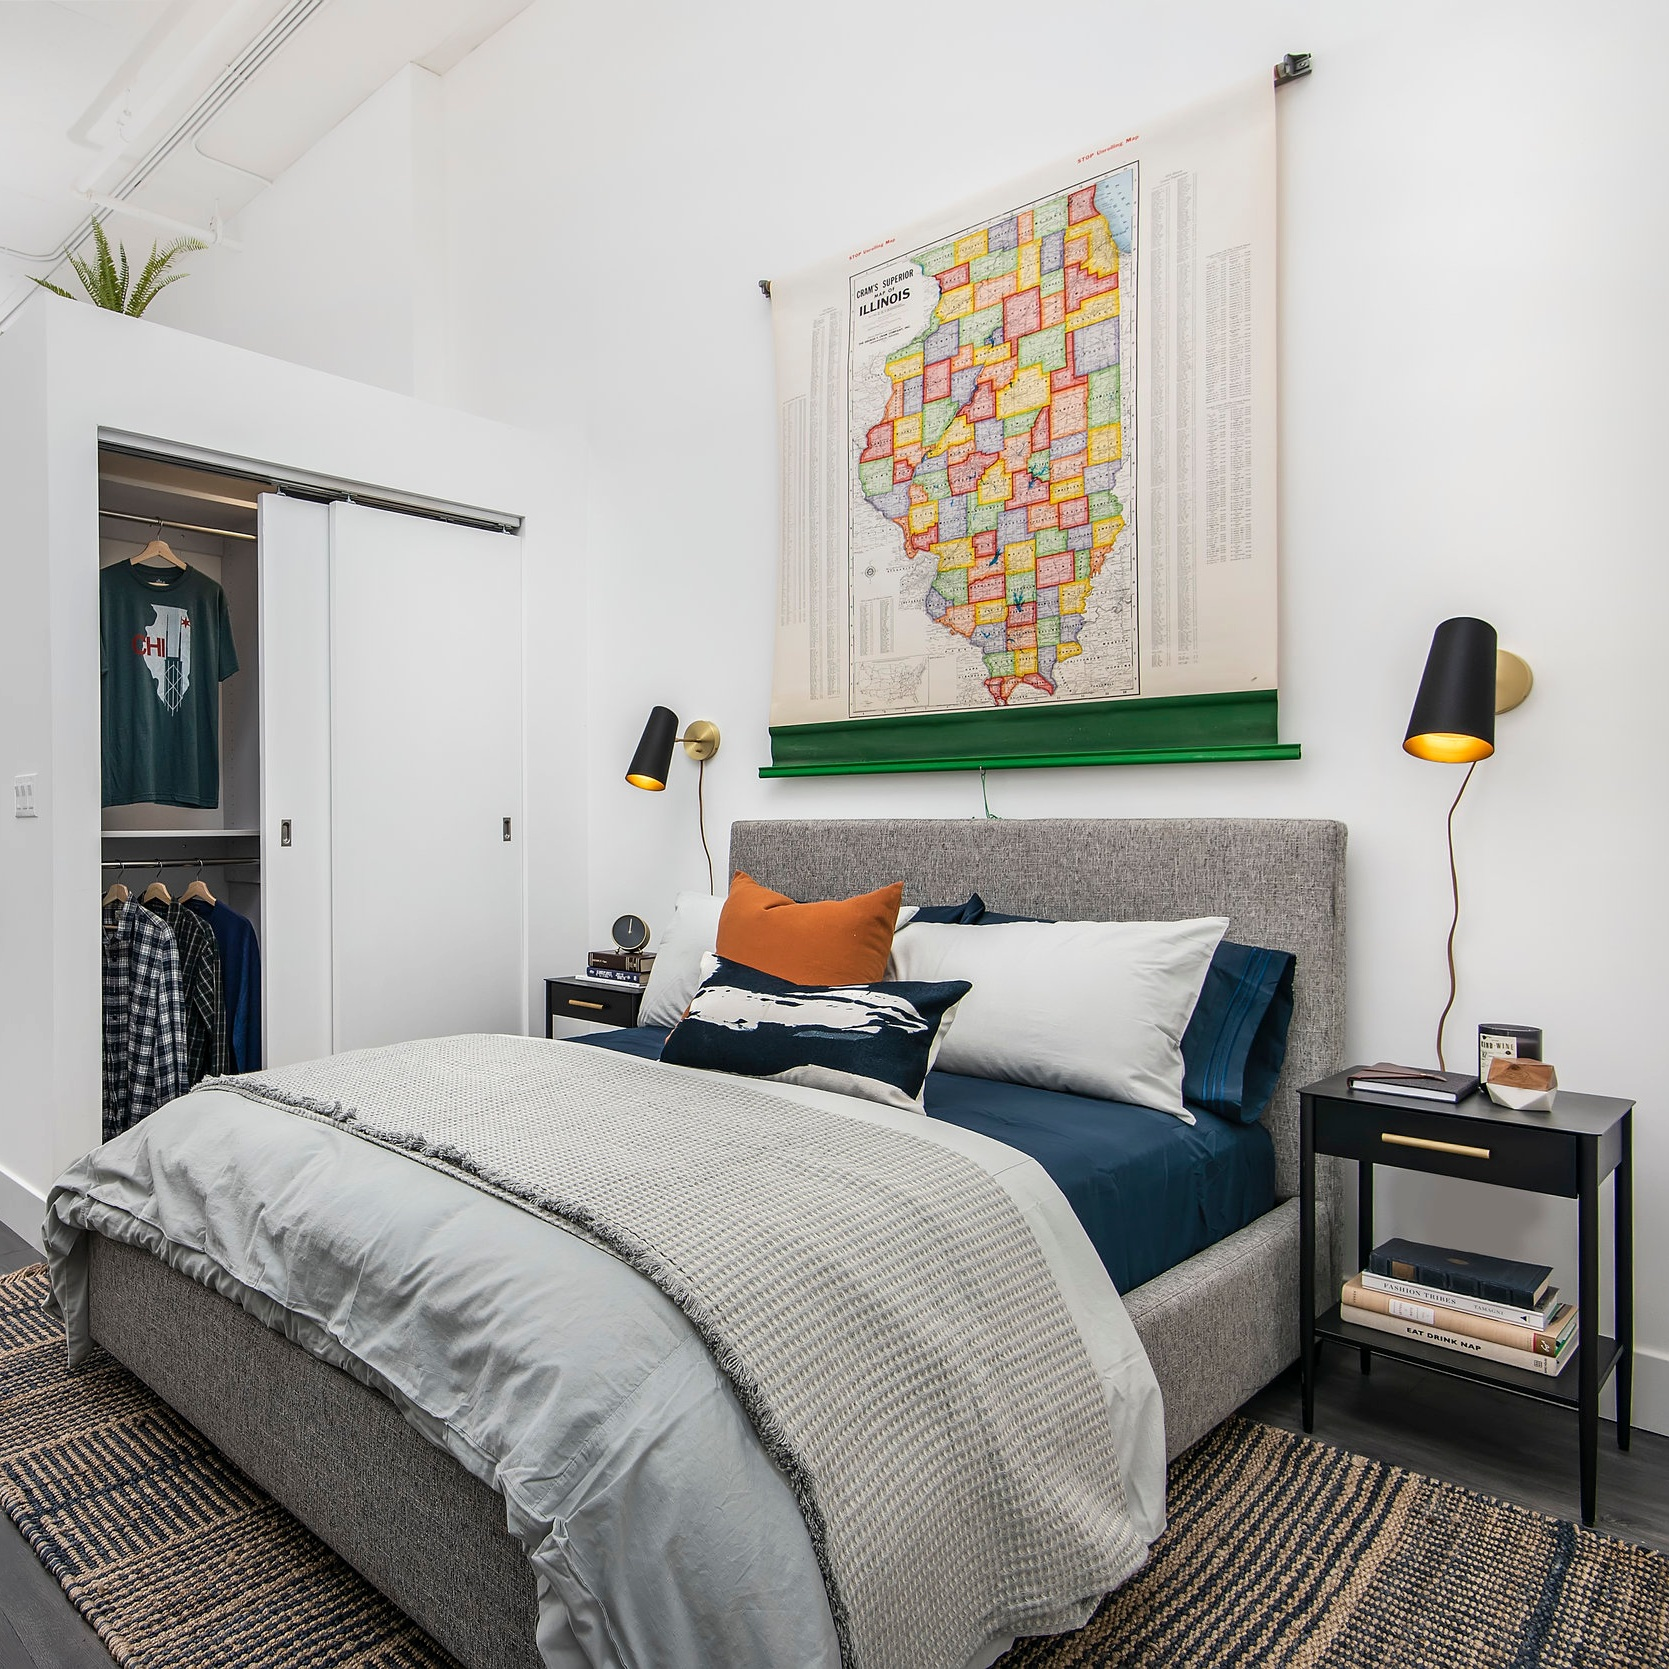 PRE-LEASING BEGINS AT THE FIELD'S LOFTS ON CHICAGO'S NORTH SIDE - RE JOURNALS > 2.25.2019